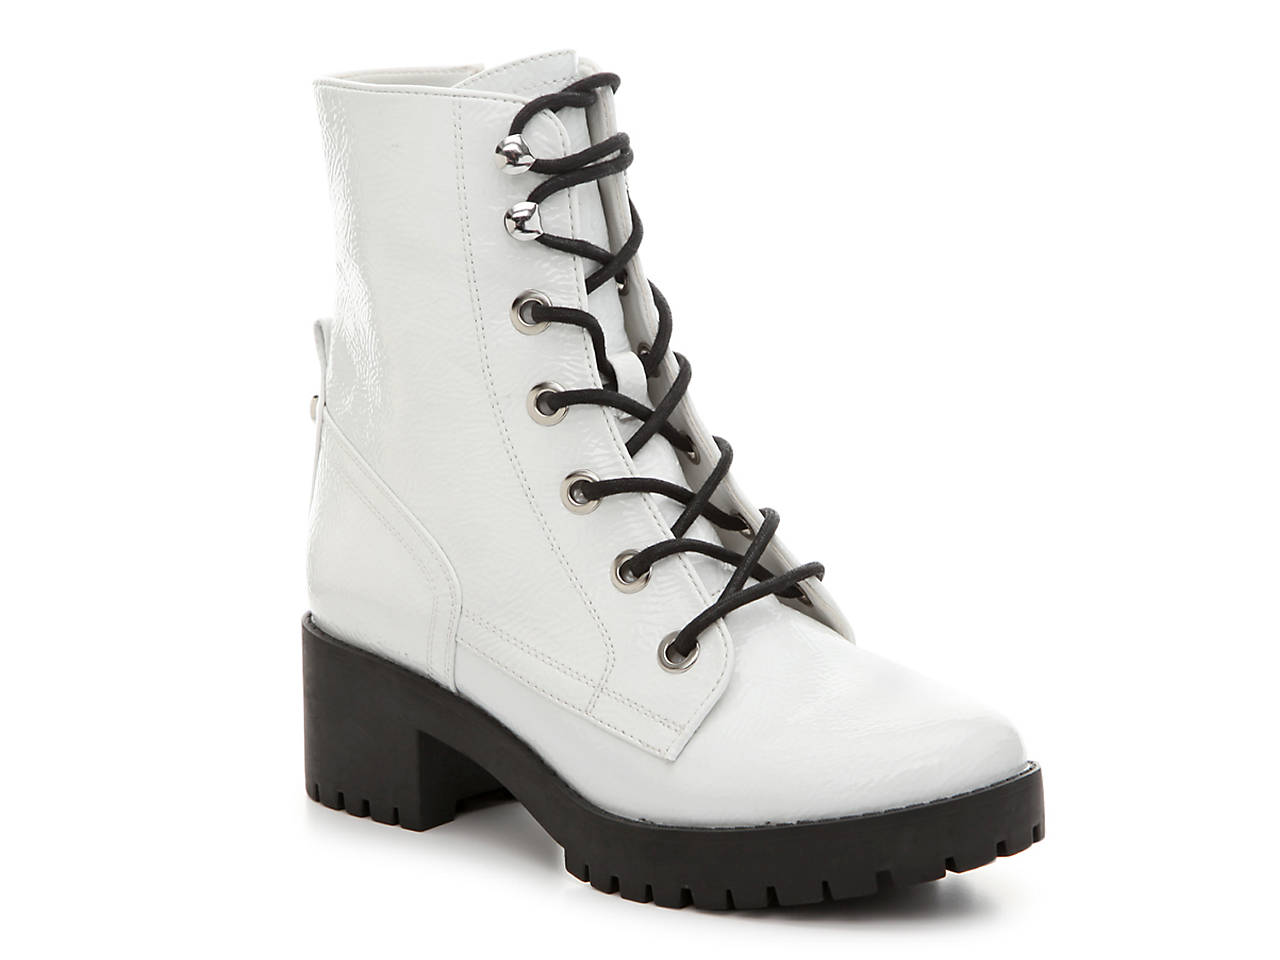 617de9708f2 Steve Madden Georgie Combat Boot Women s Shoes